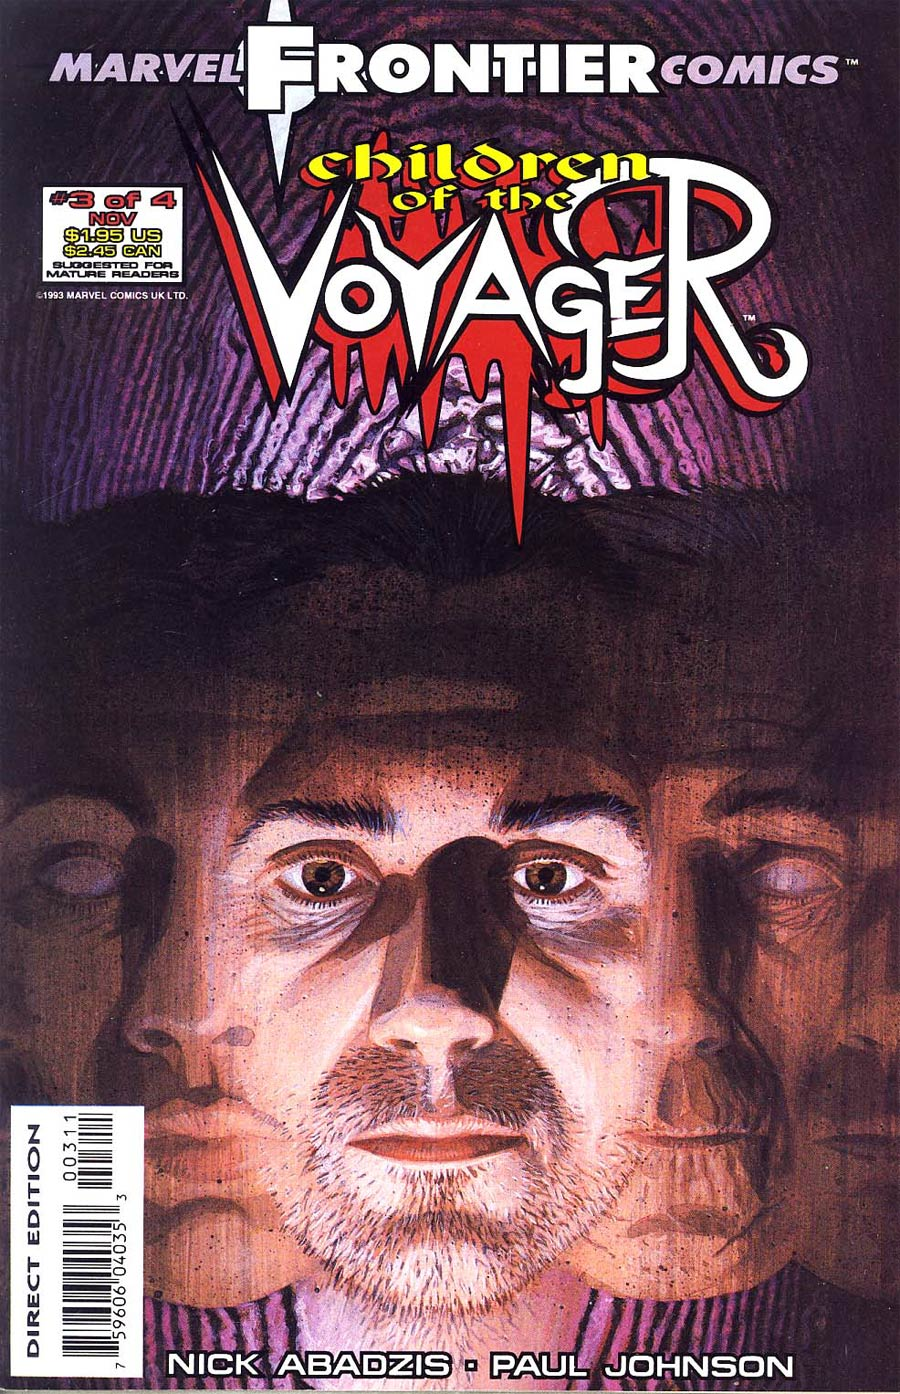 Children Of The Voyager #3